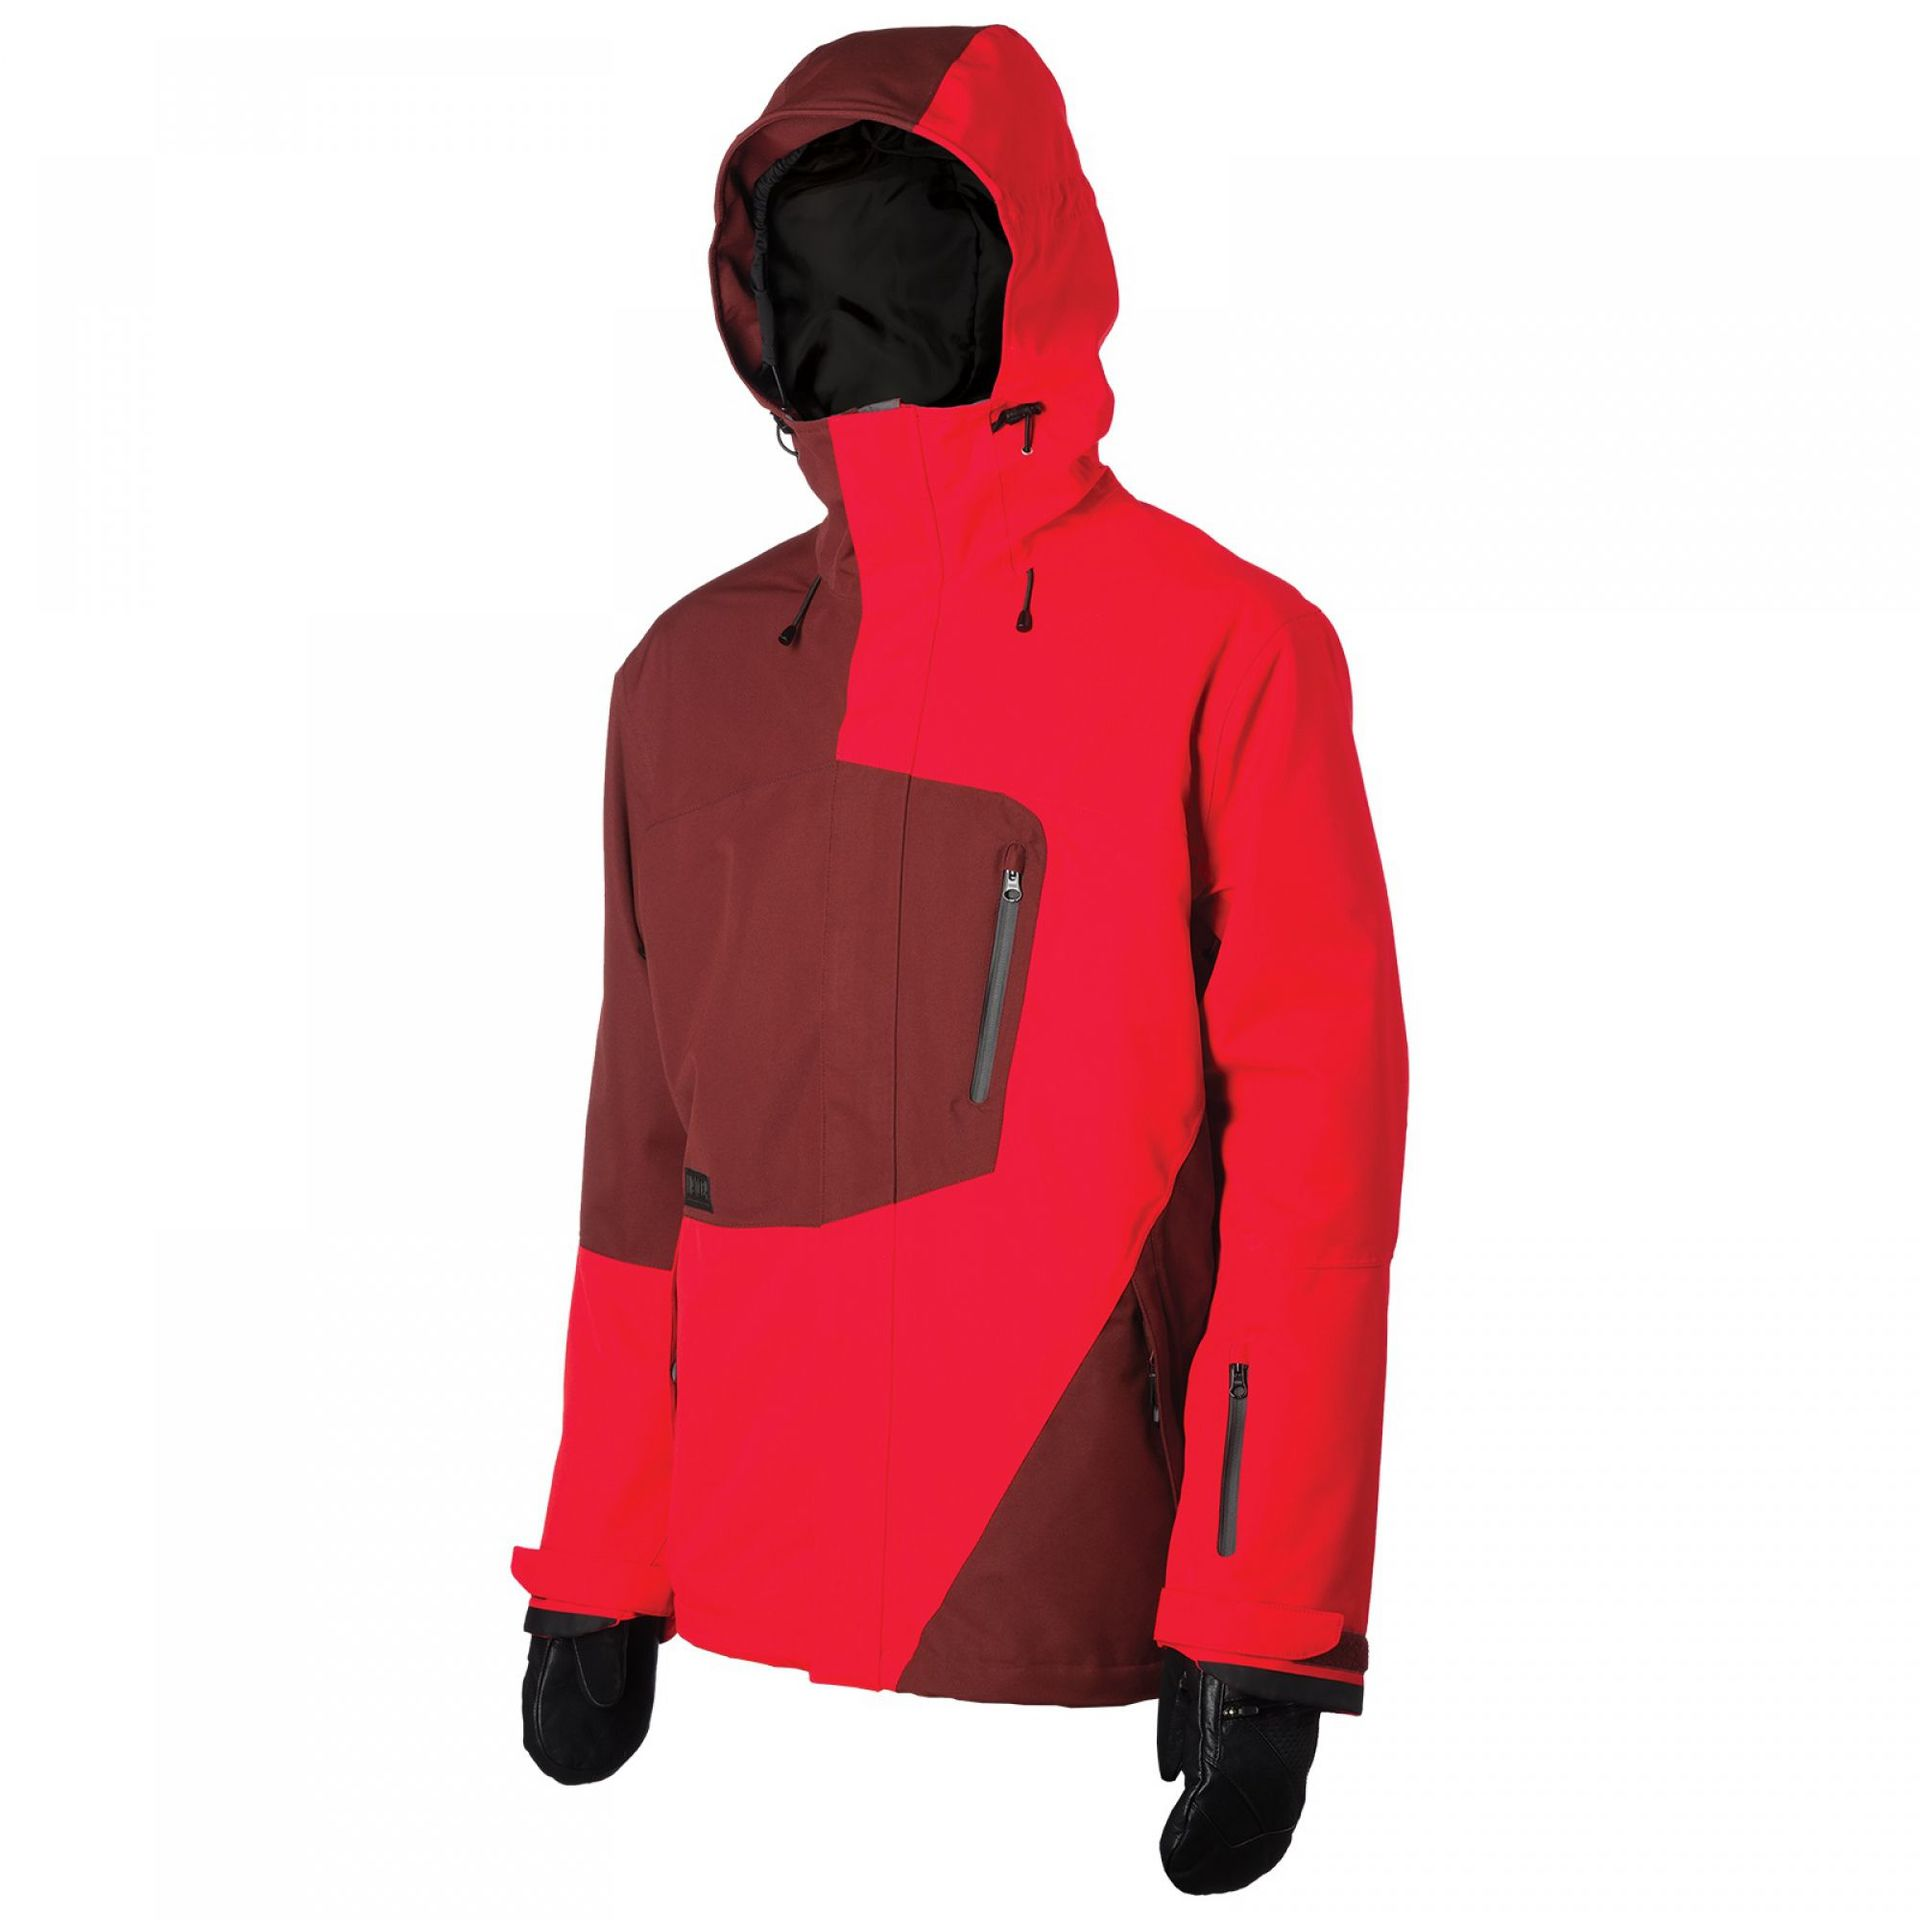 KURTKA LIB TECH RECYCLER JACKET ANDORRA RED